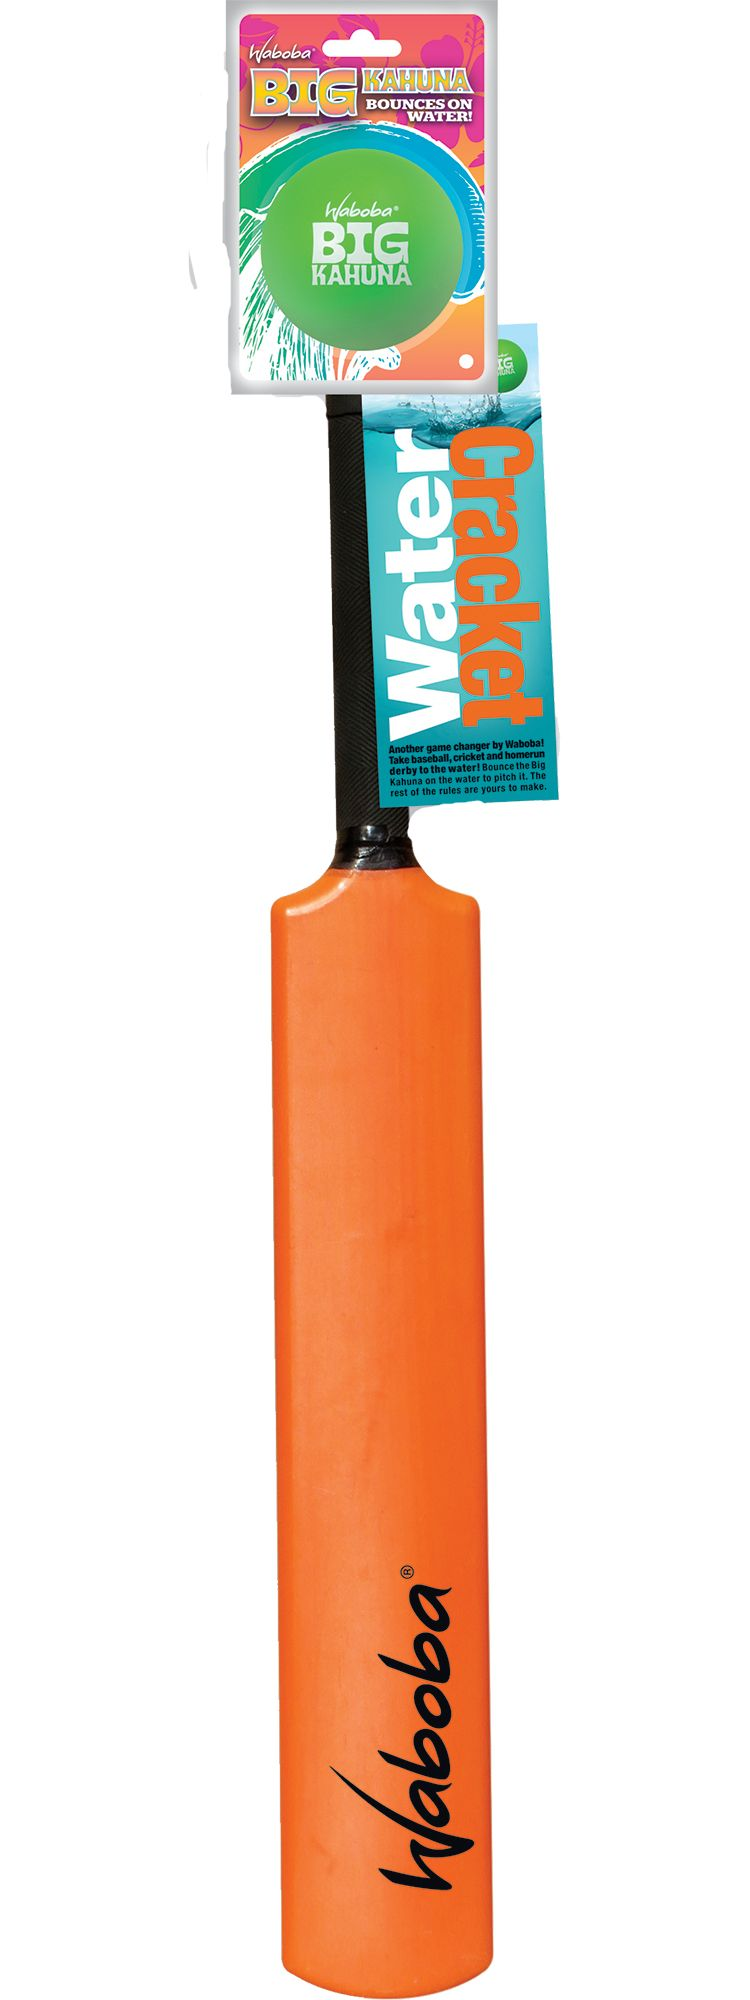 Game on closeouts sporting goods - Product Image Waboba Cracket Water Bat And Big Kahuna Ball